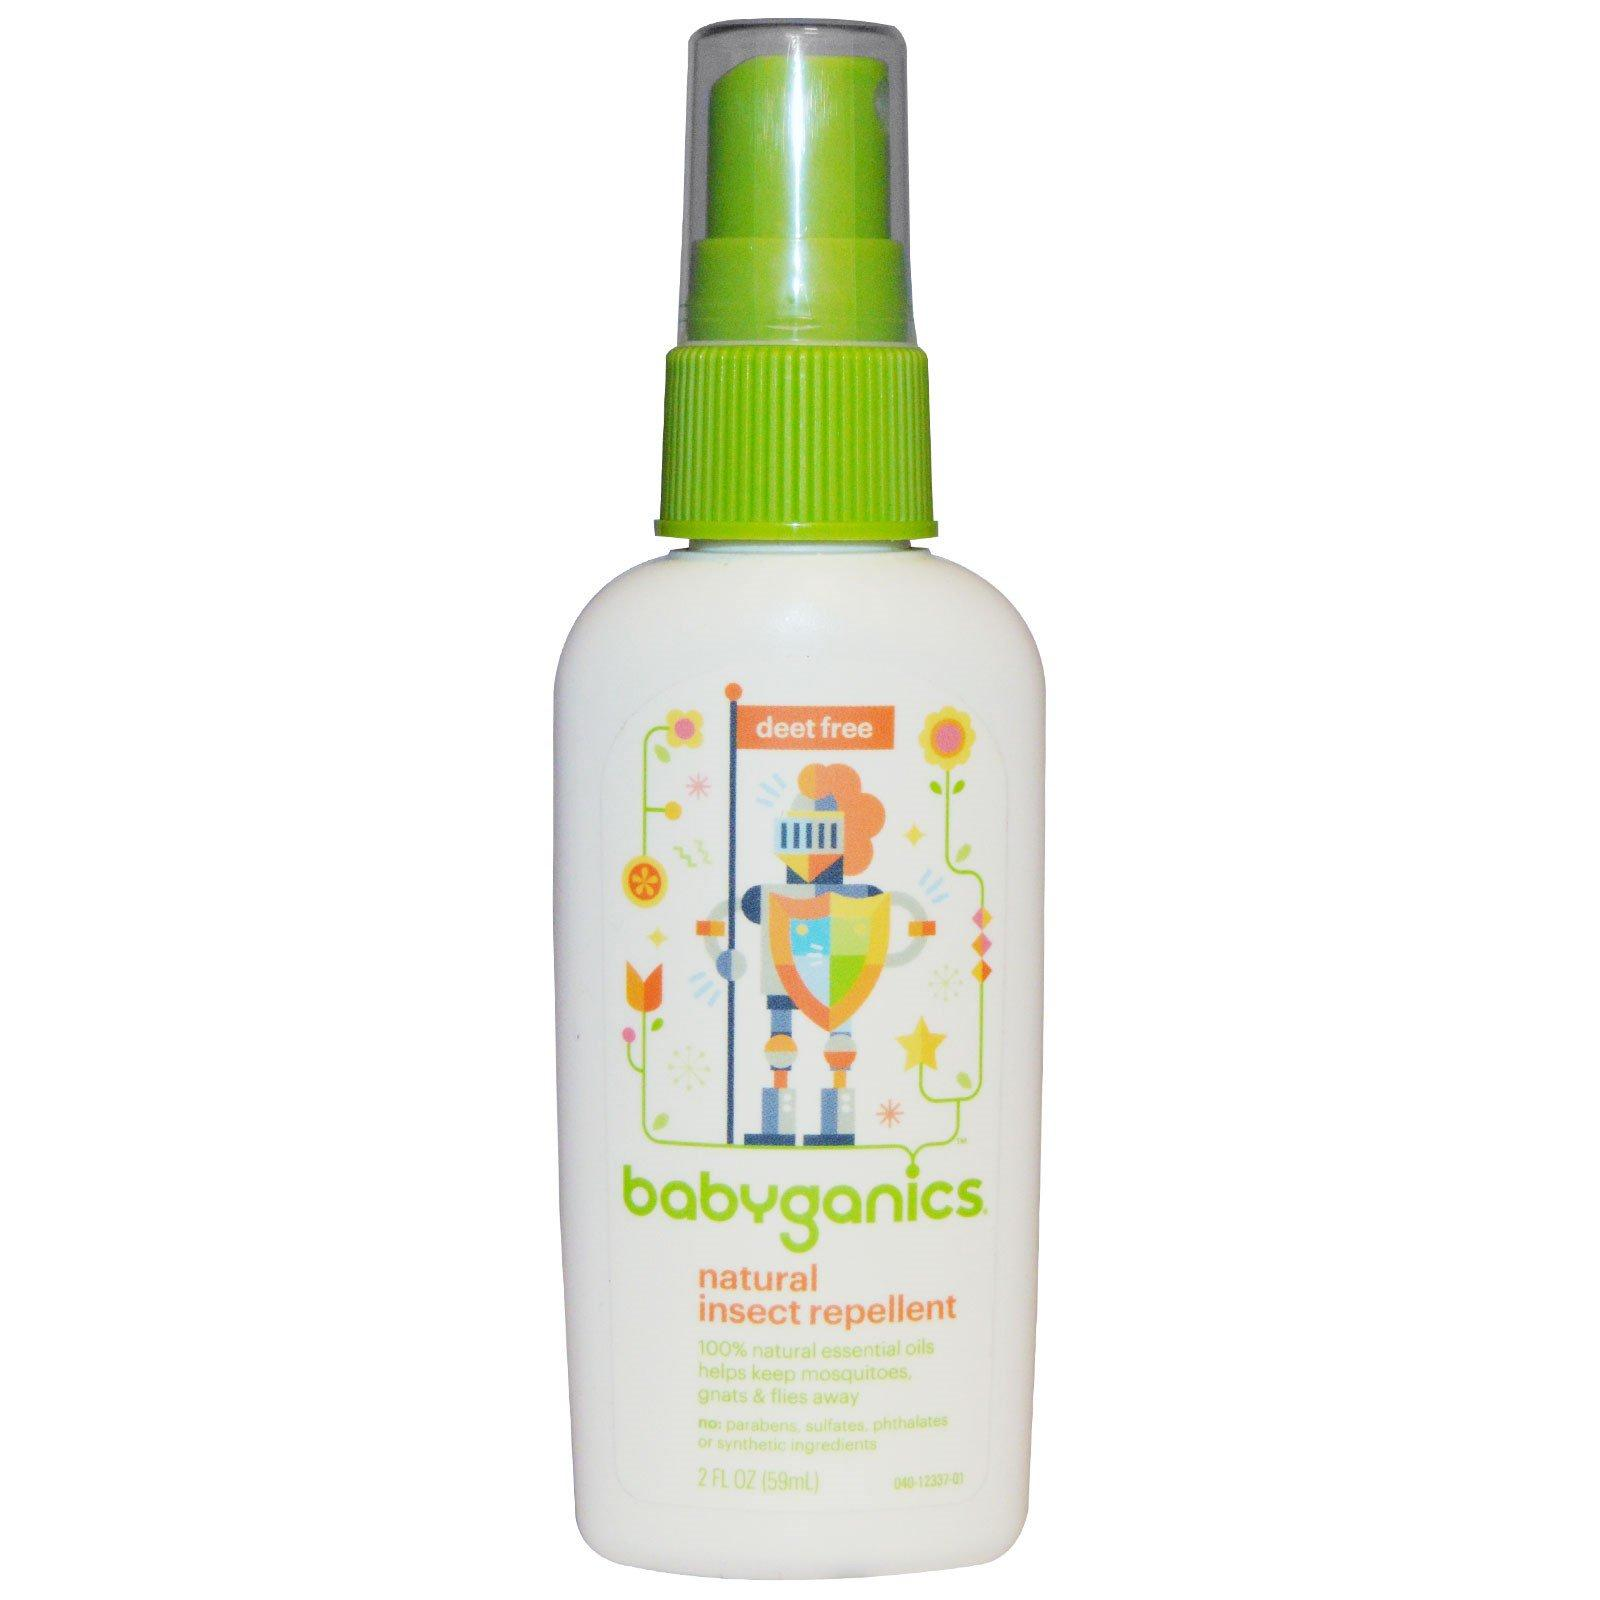 Babyganics, Natural Insect Repellent, 2 Fl Oz (59 Ml) By Oilyfriends.